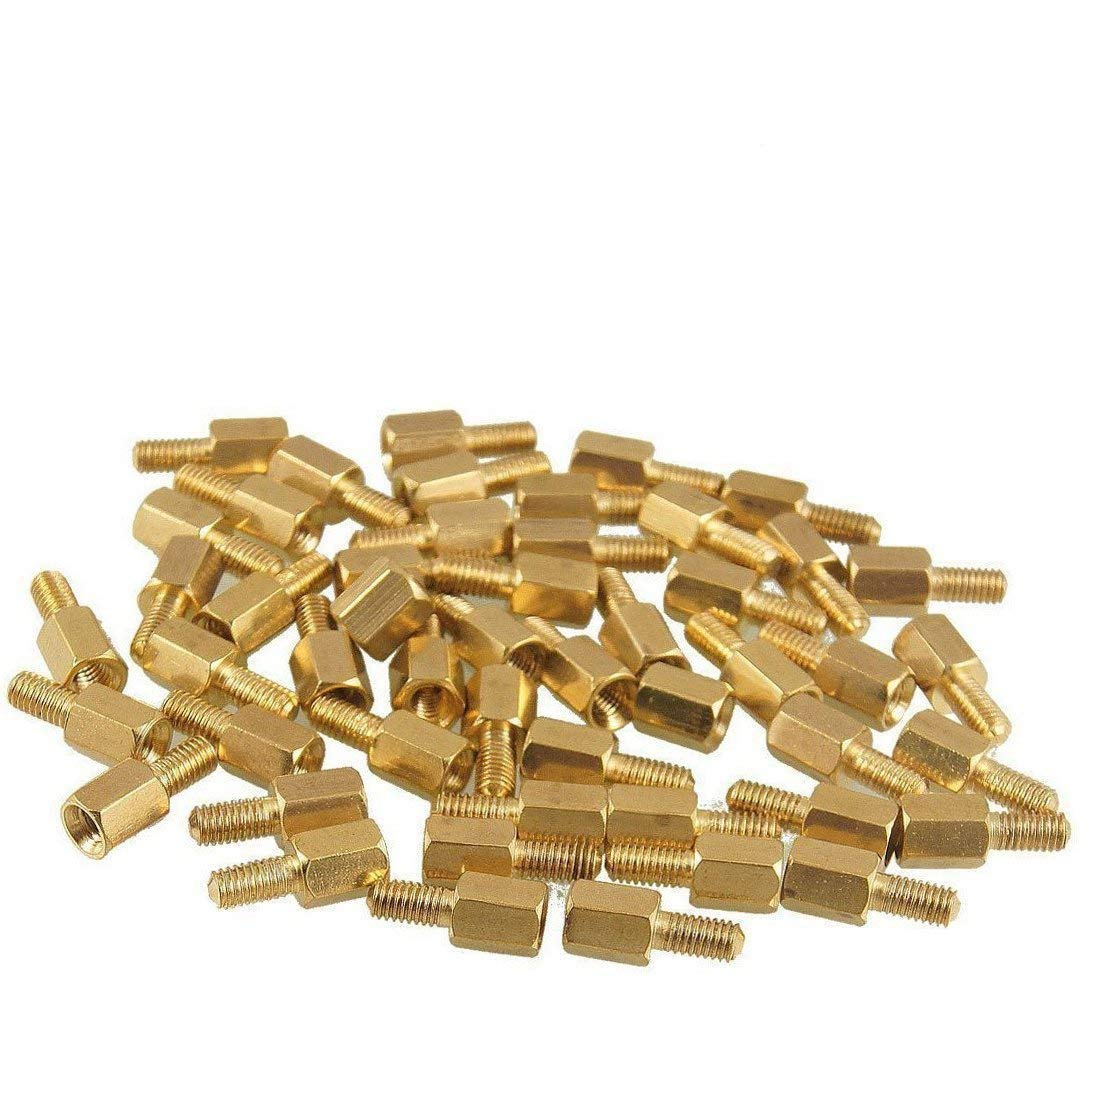 uxcell 50Pcs M3x6mm Male Female Thread Hex Standoff Spacer 12mm Body Length